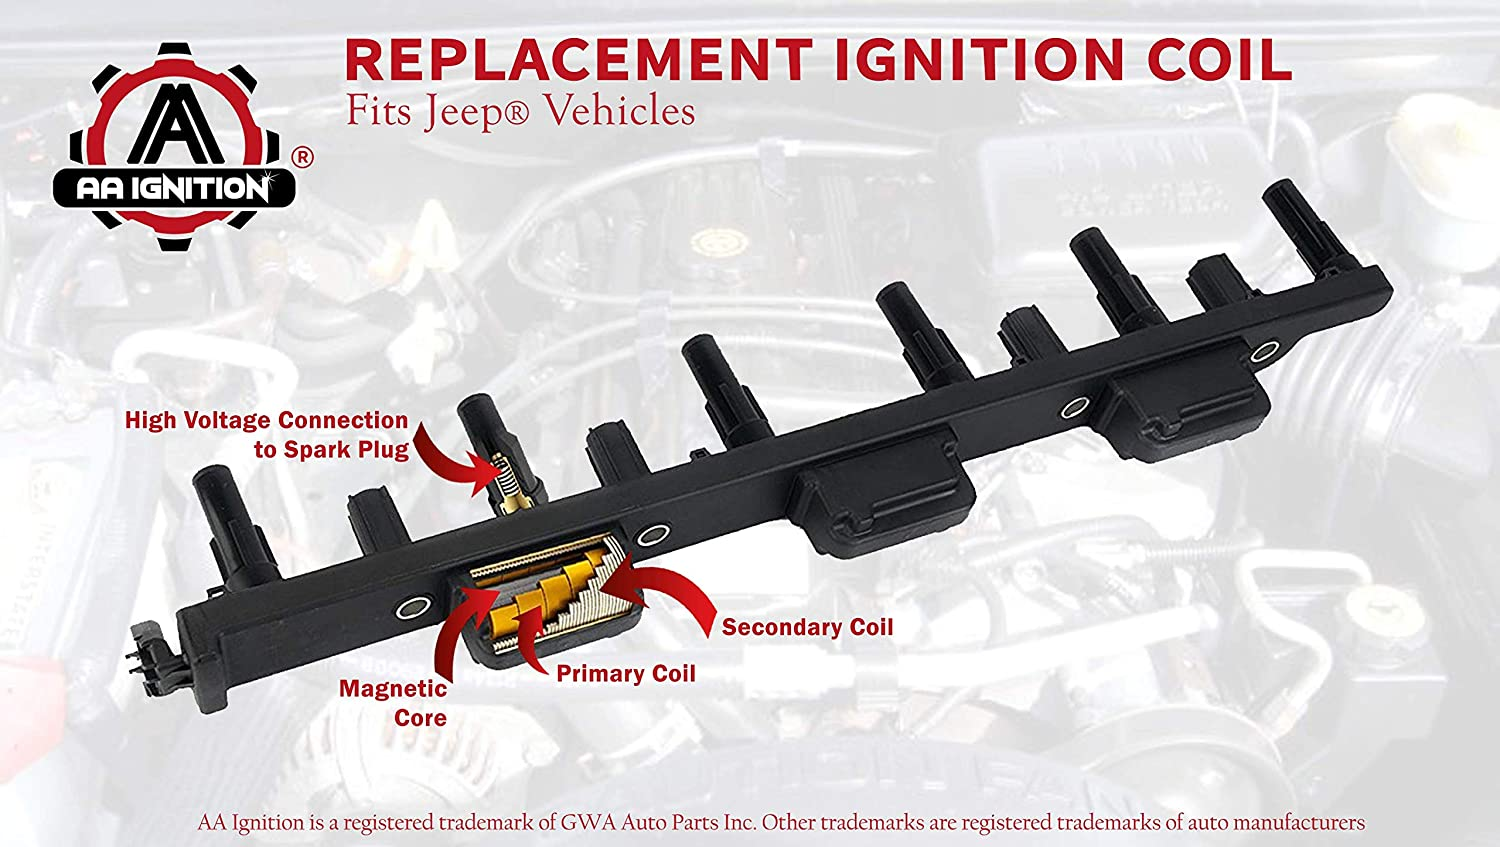 Ignition Coil Pack Fits Jeep Grand Cherokee 40l 2012 Dodge Ram Wrangler Tj Replaces 56041476ab 56041476aa 40